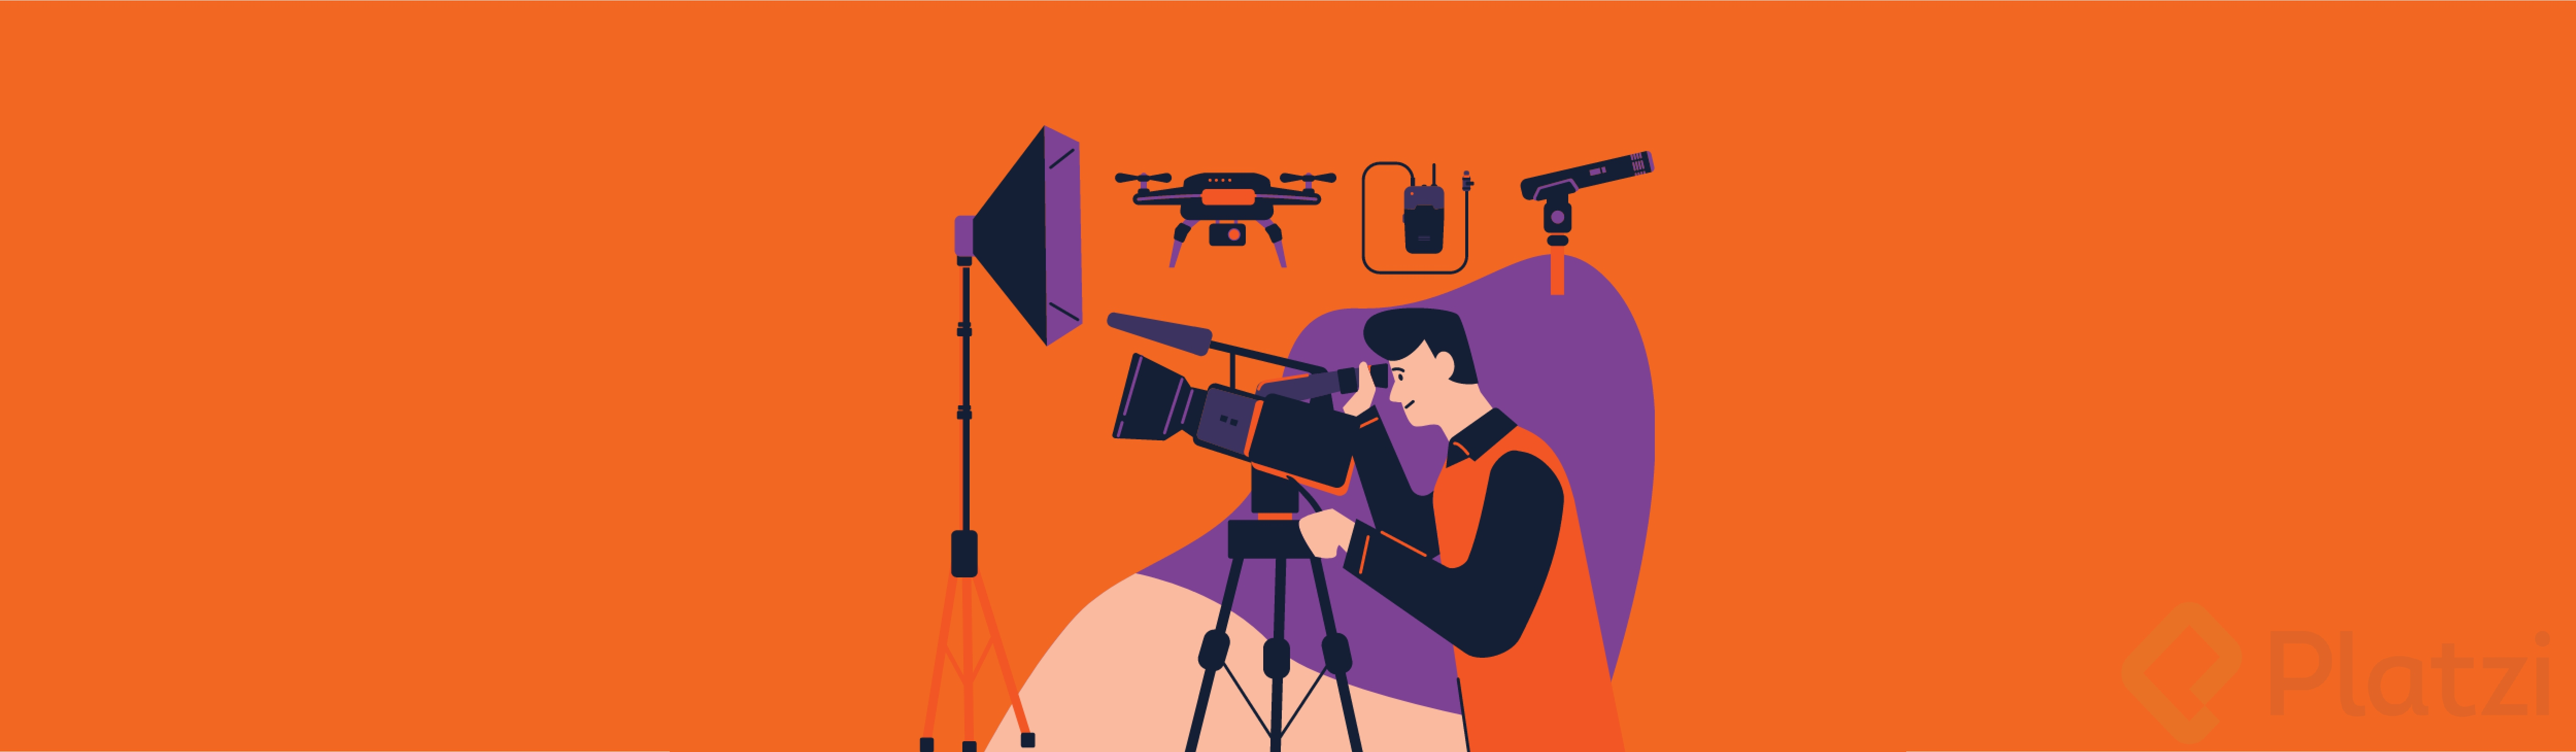 FilMinutoBlog_Cover (1).png